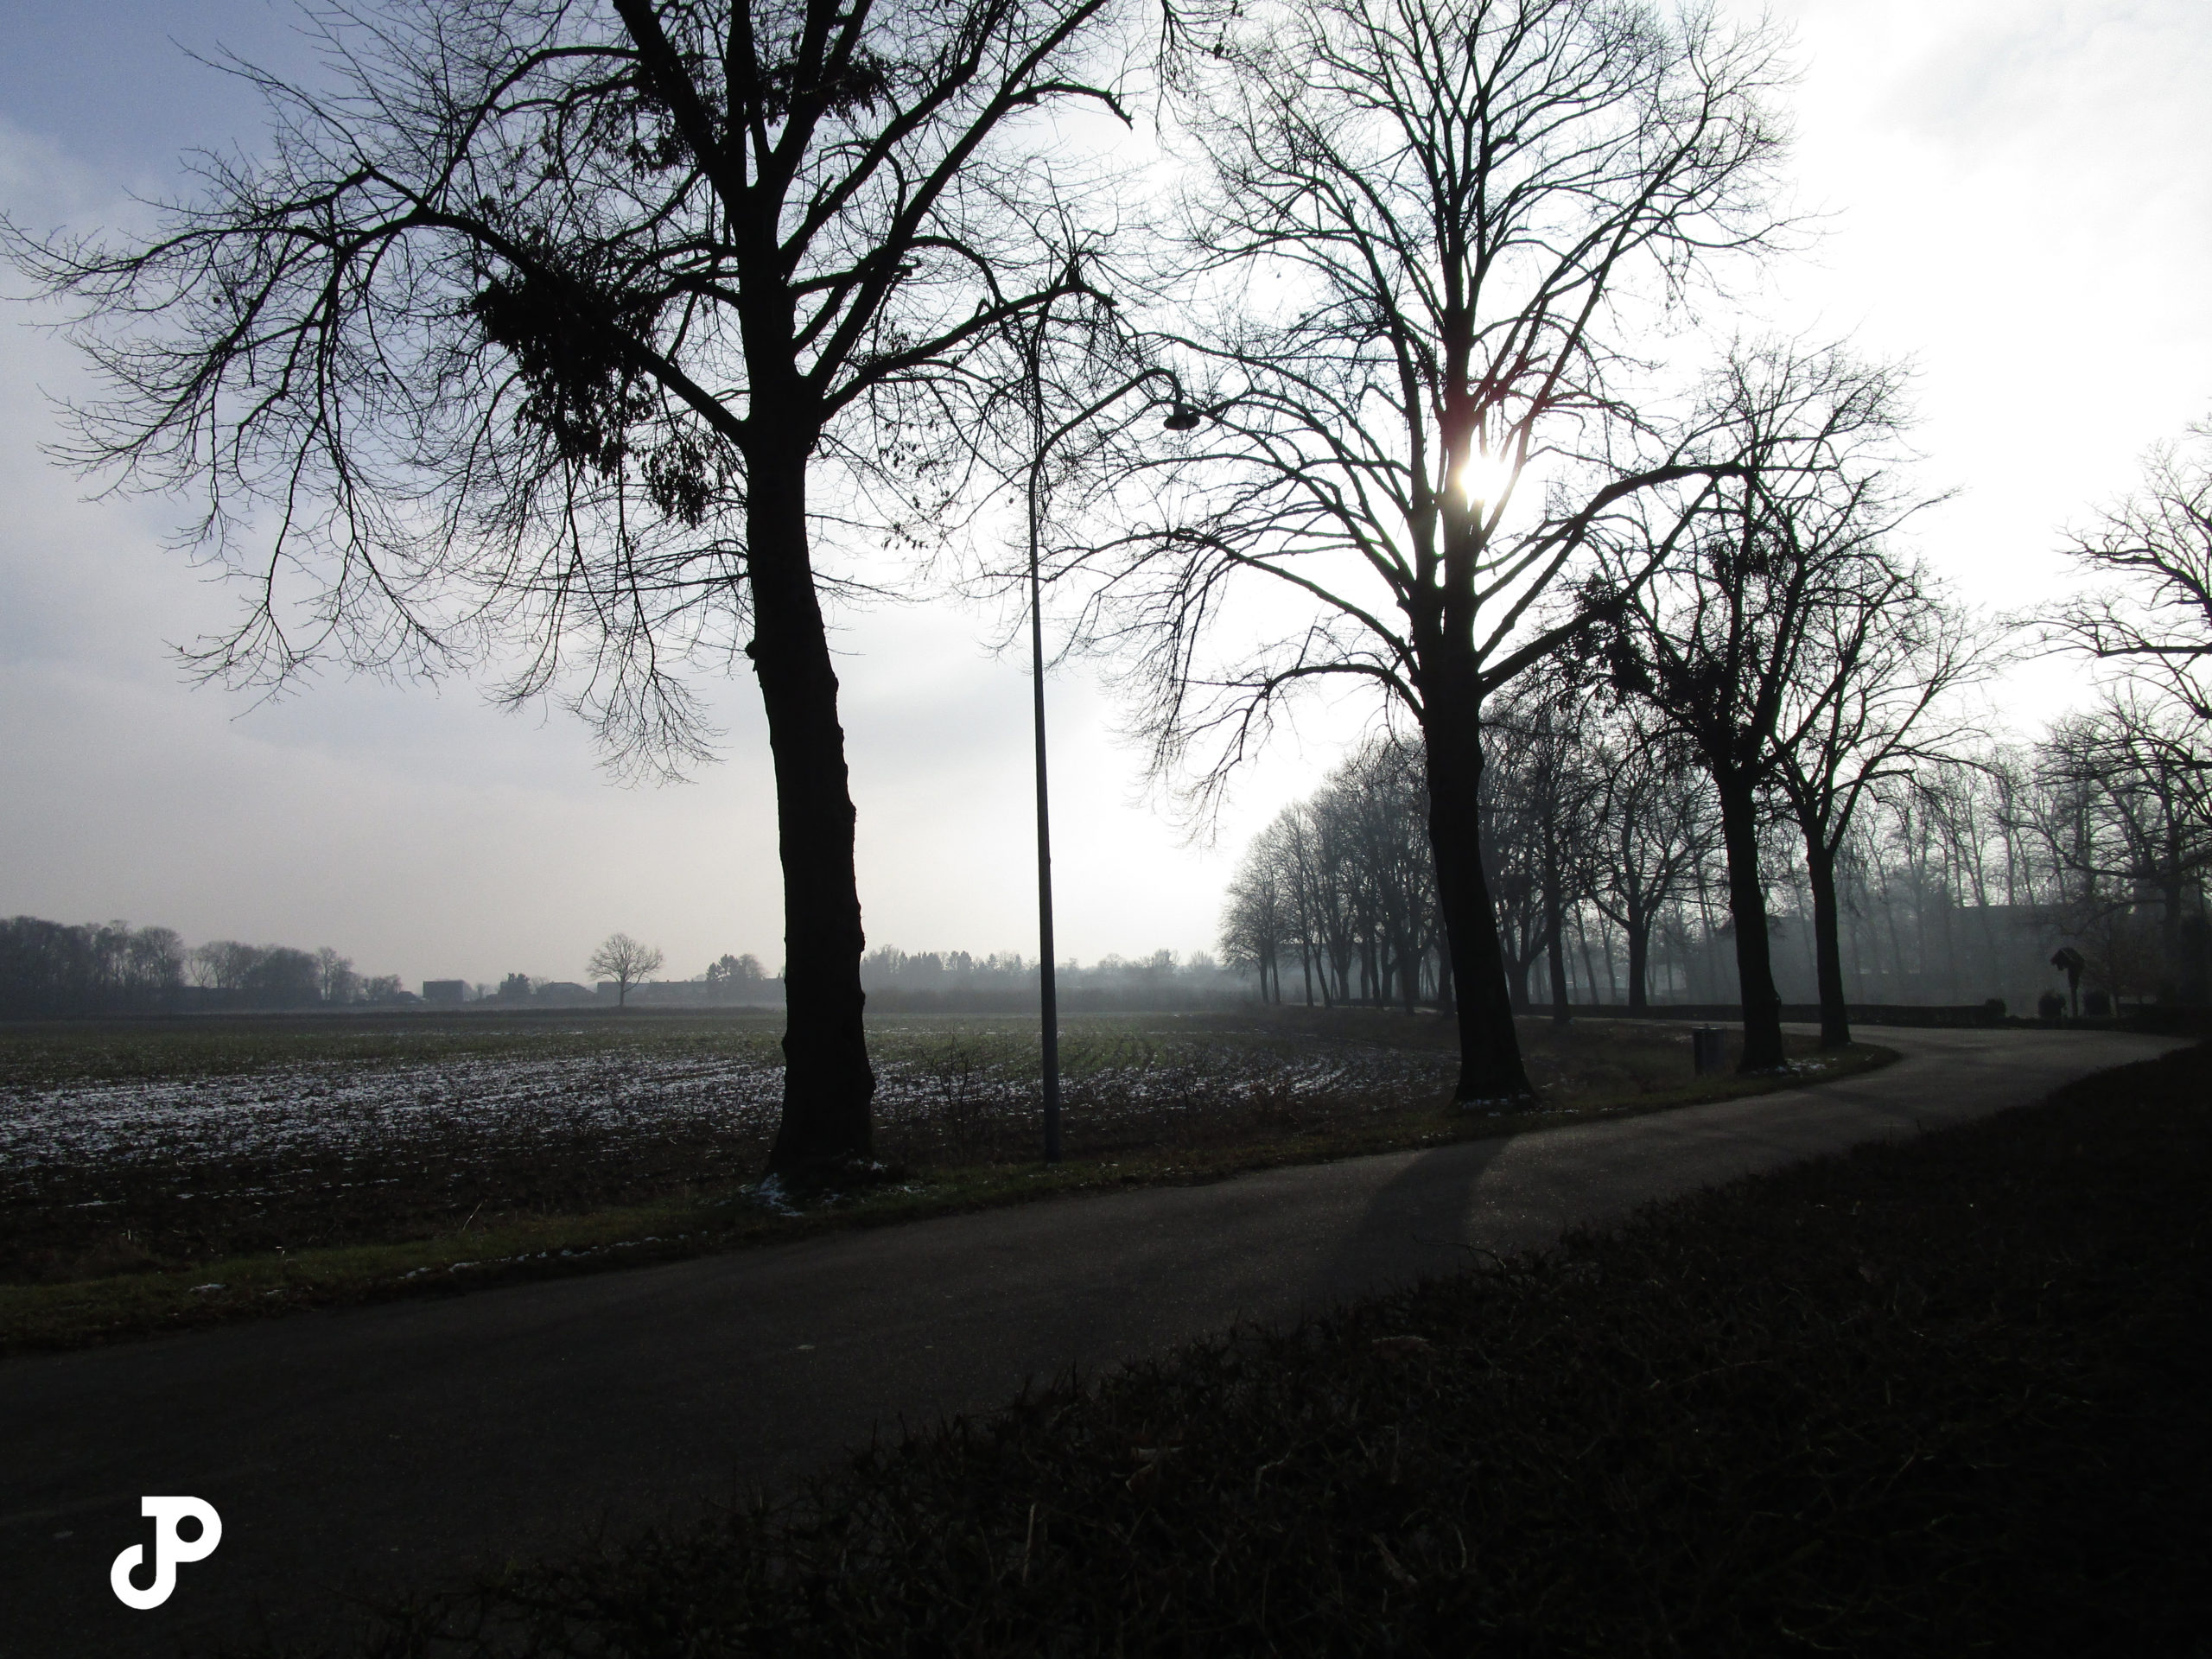 a shadowed road winding past silhouettes of trees and a foggy field in the distance